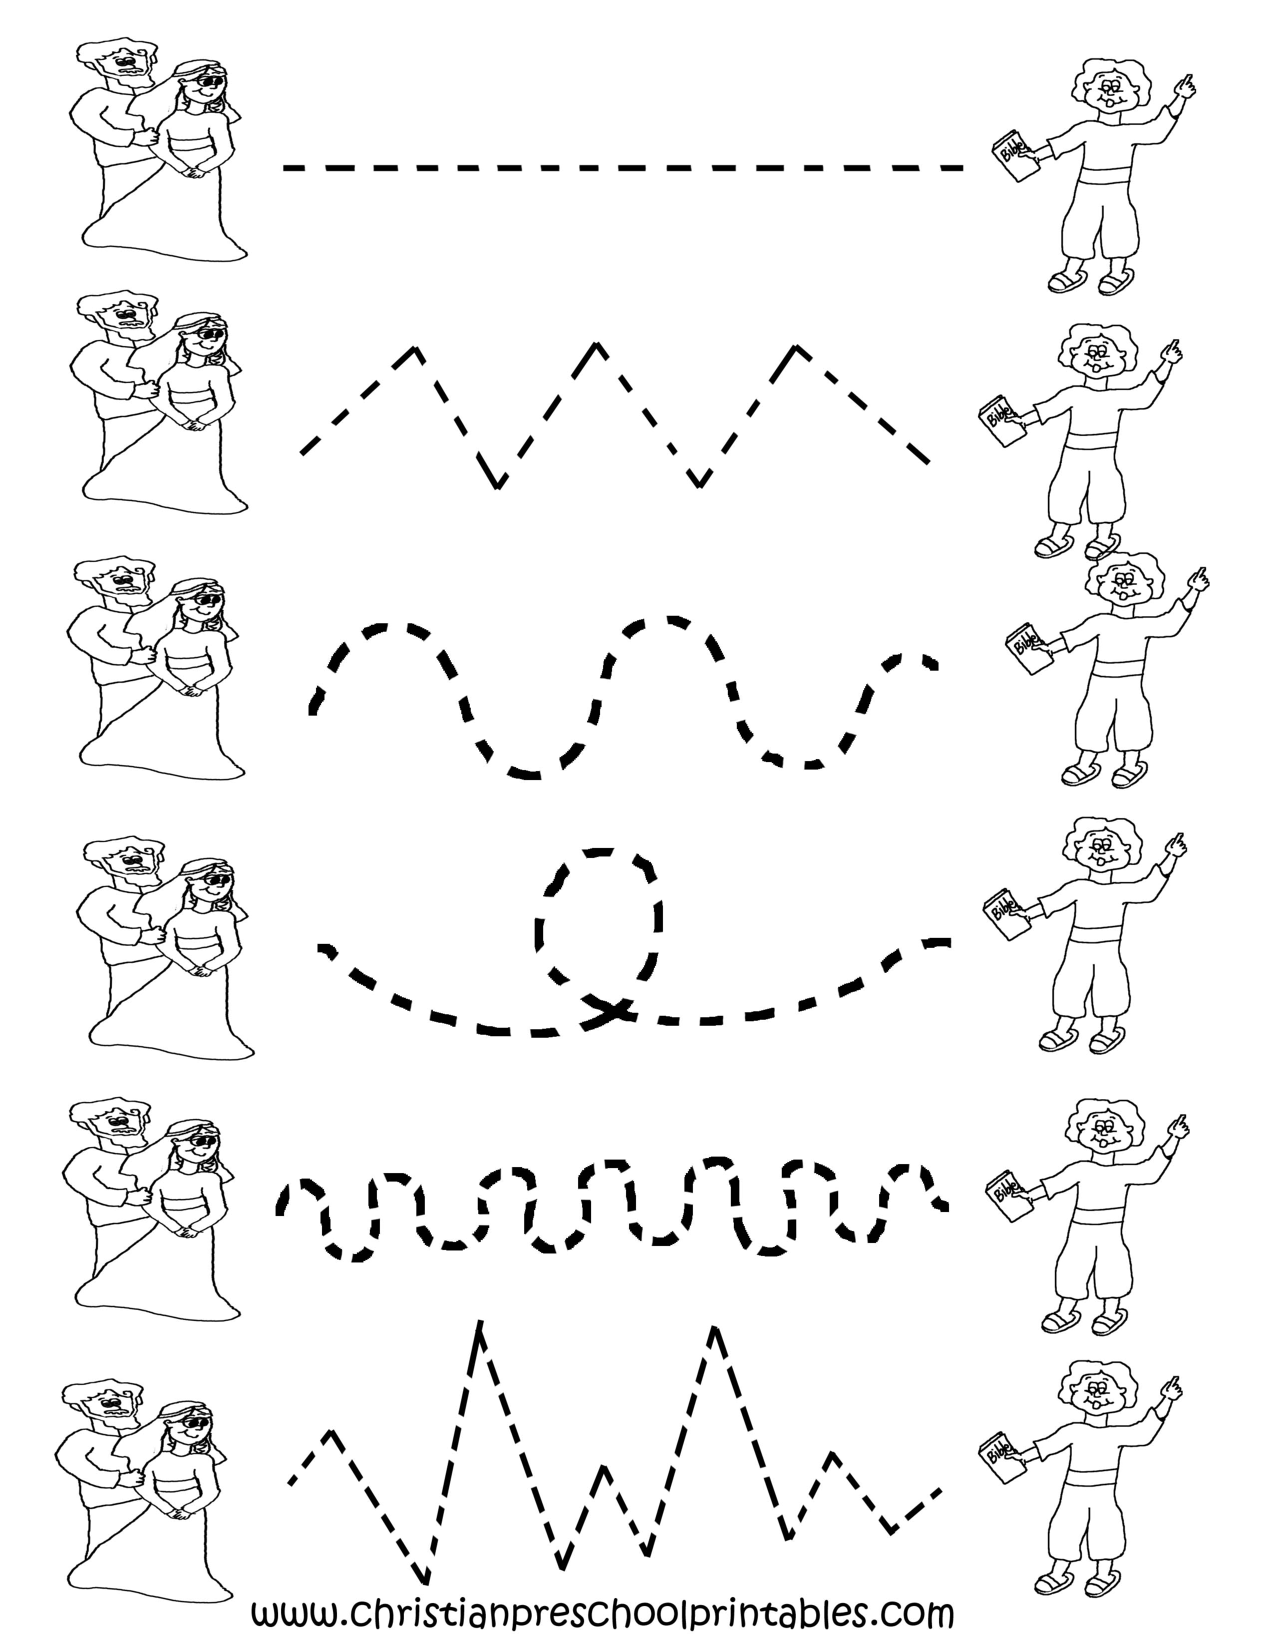 Preschool Tracing Worksheets cakepins.com | Writing | Pinterest ...